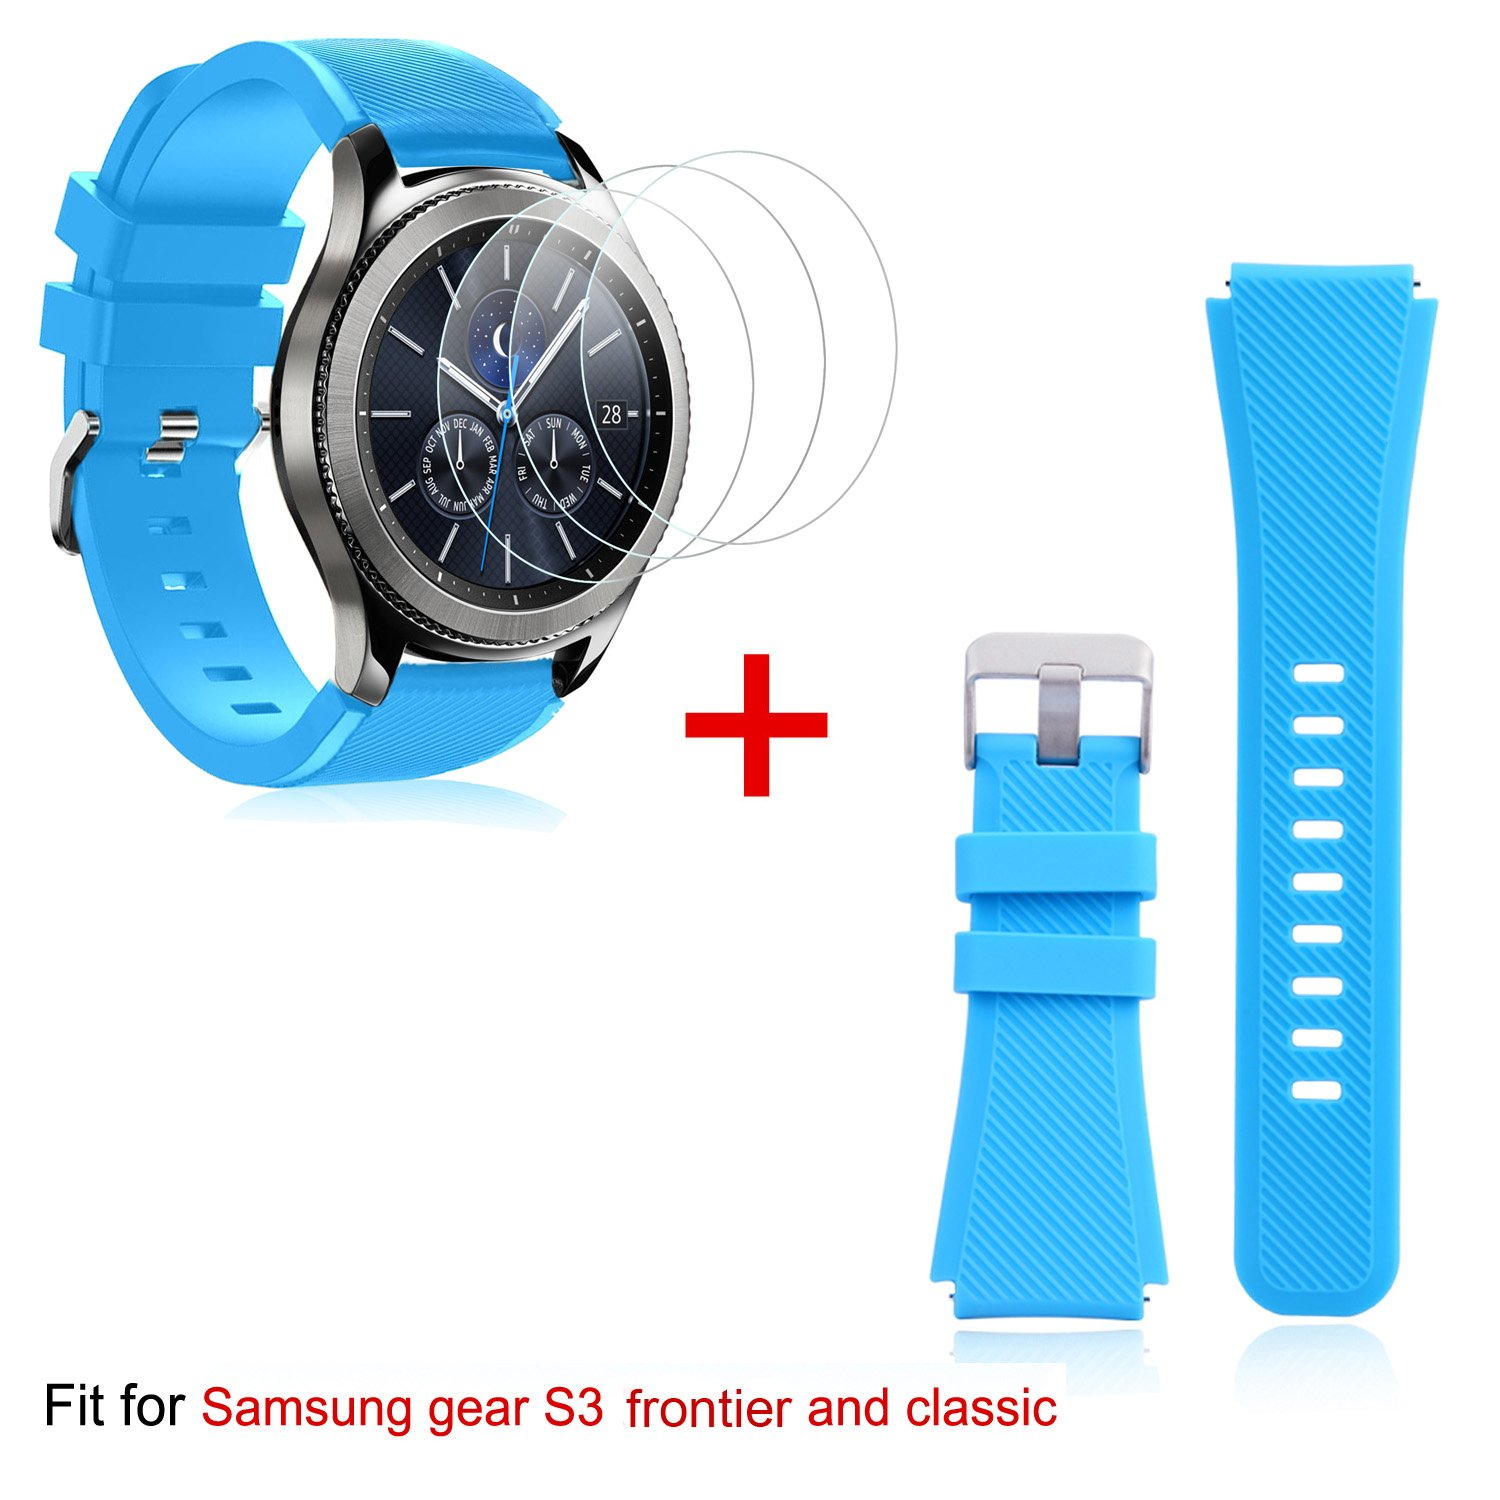 Band Replacement and Tempered Glass Screen Protectors[3-Pack] for Samsung Gear S3, Wrist Band for Samsung Gear S3 Frontier/Classic Smartwatch (Blue)